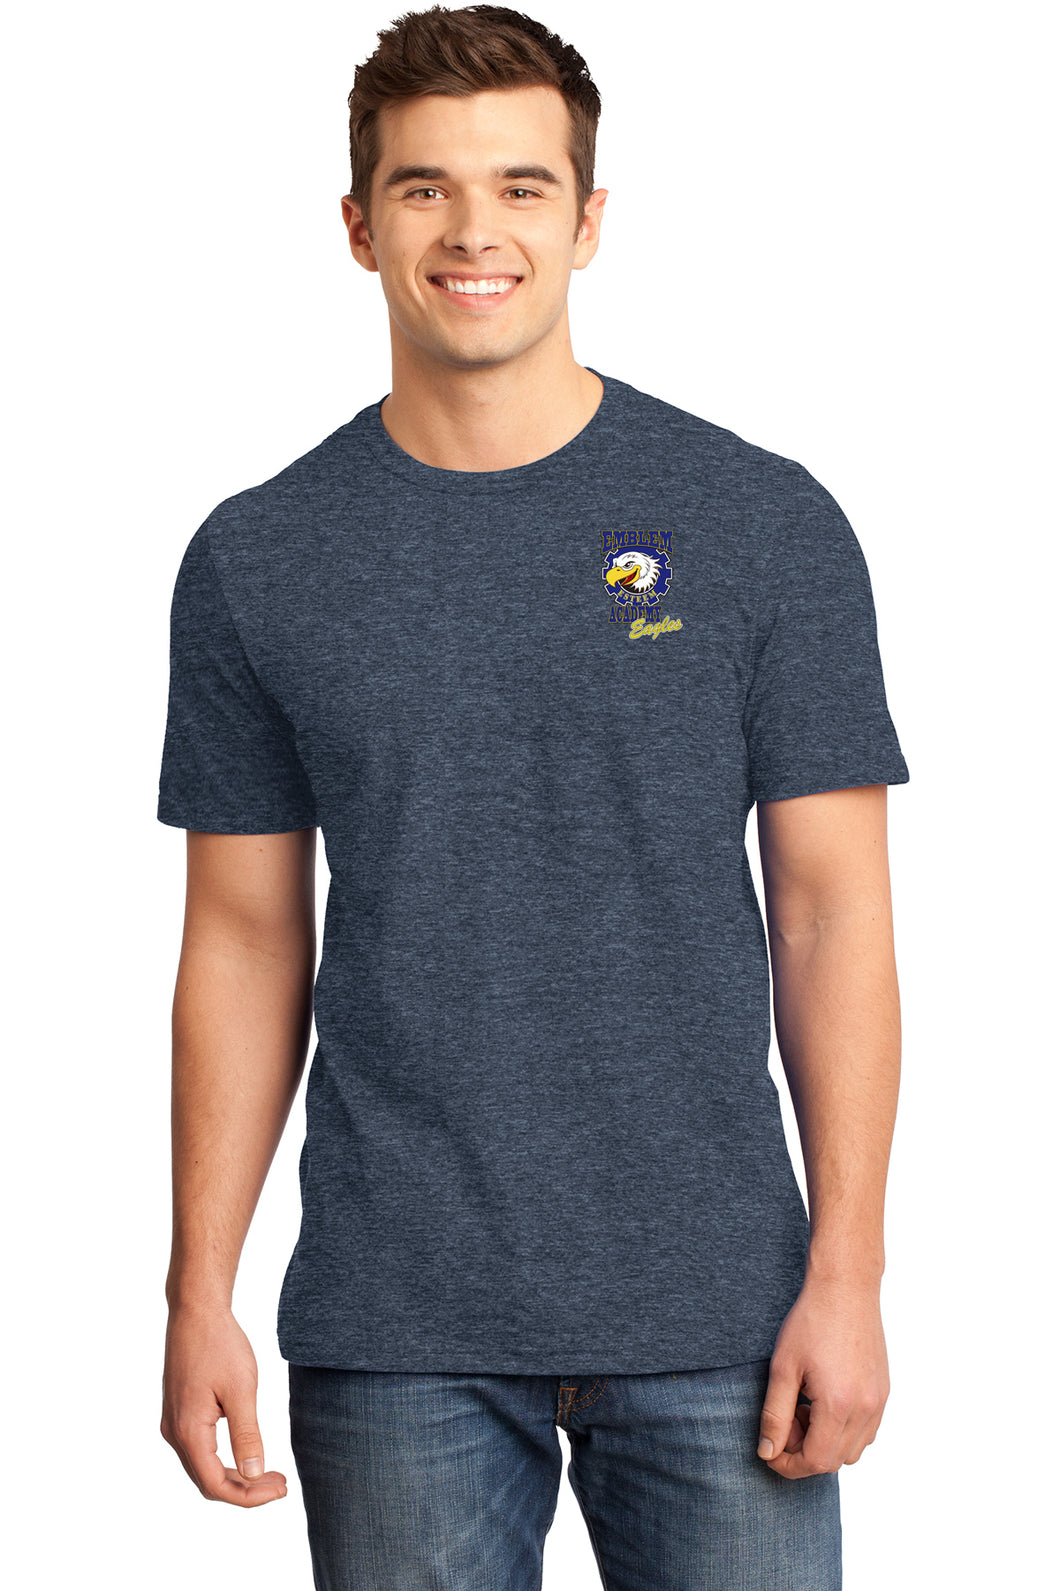 SOAR T-Shirt - ADULT